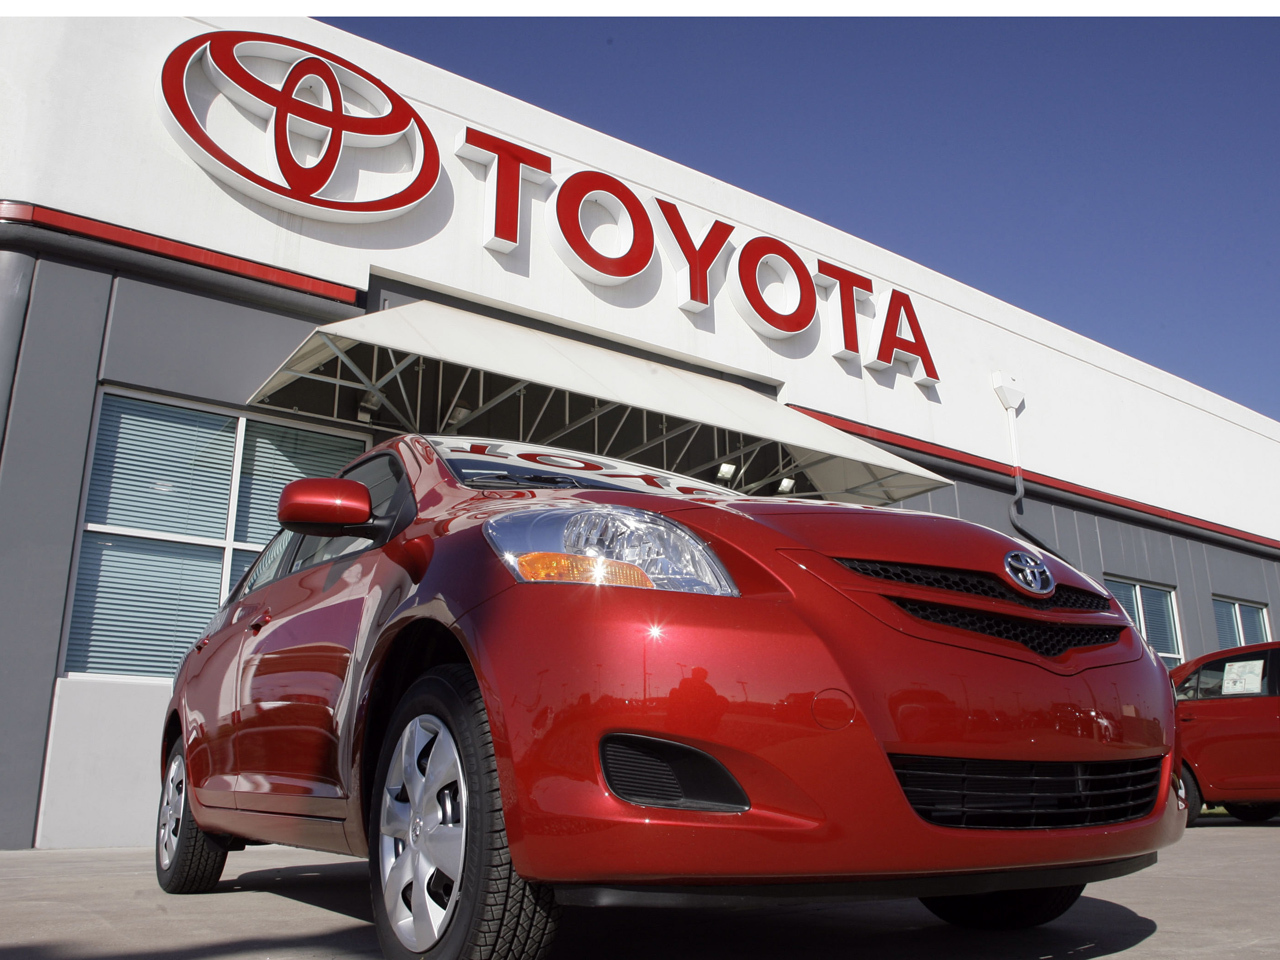 Mive Toyota Recall Due To Faulty Window Switch